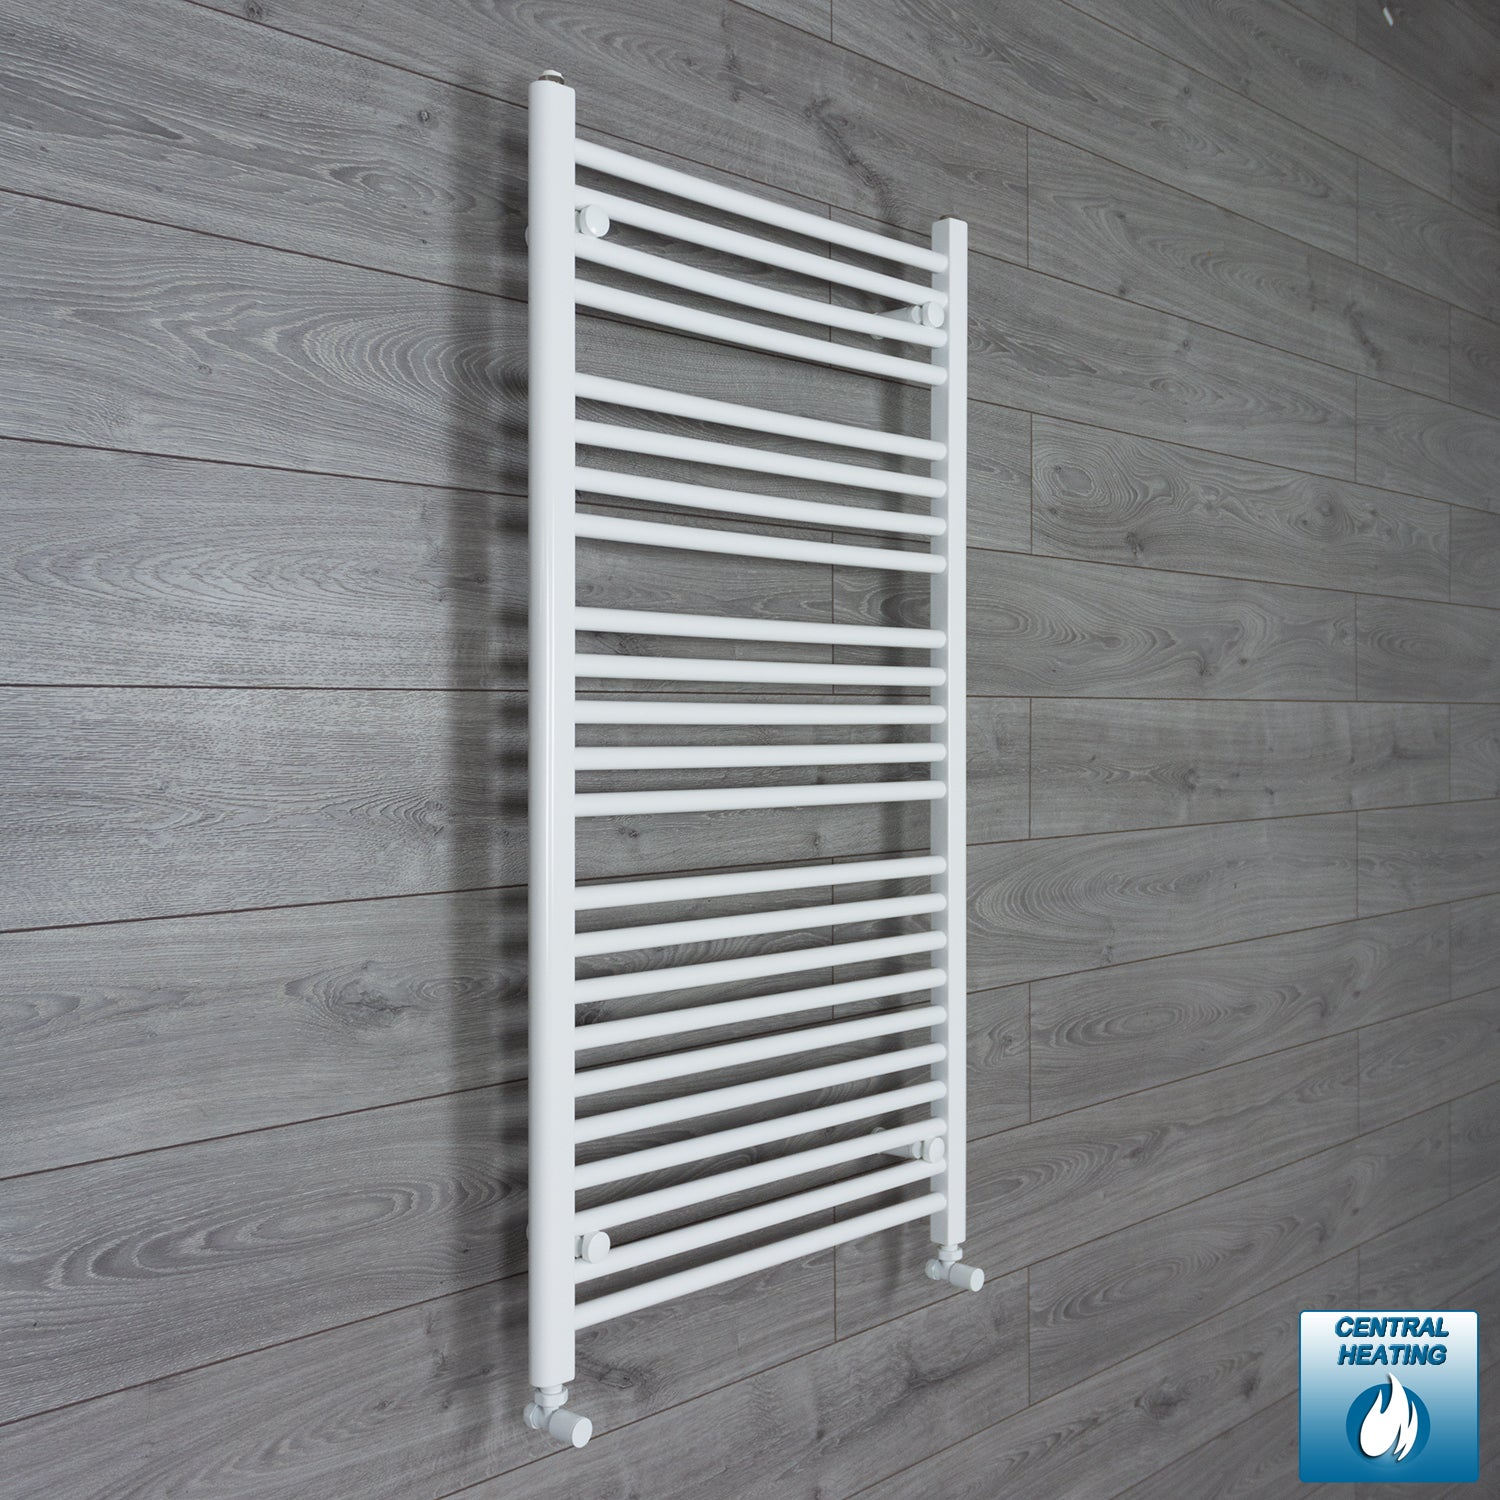 650mm Wide 1200mm High White Towel Rail Radiator With Angled Valve